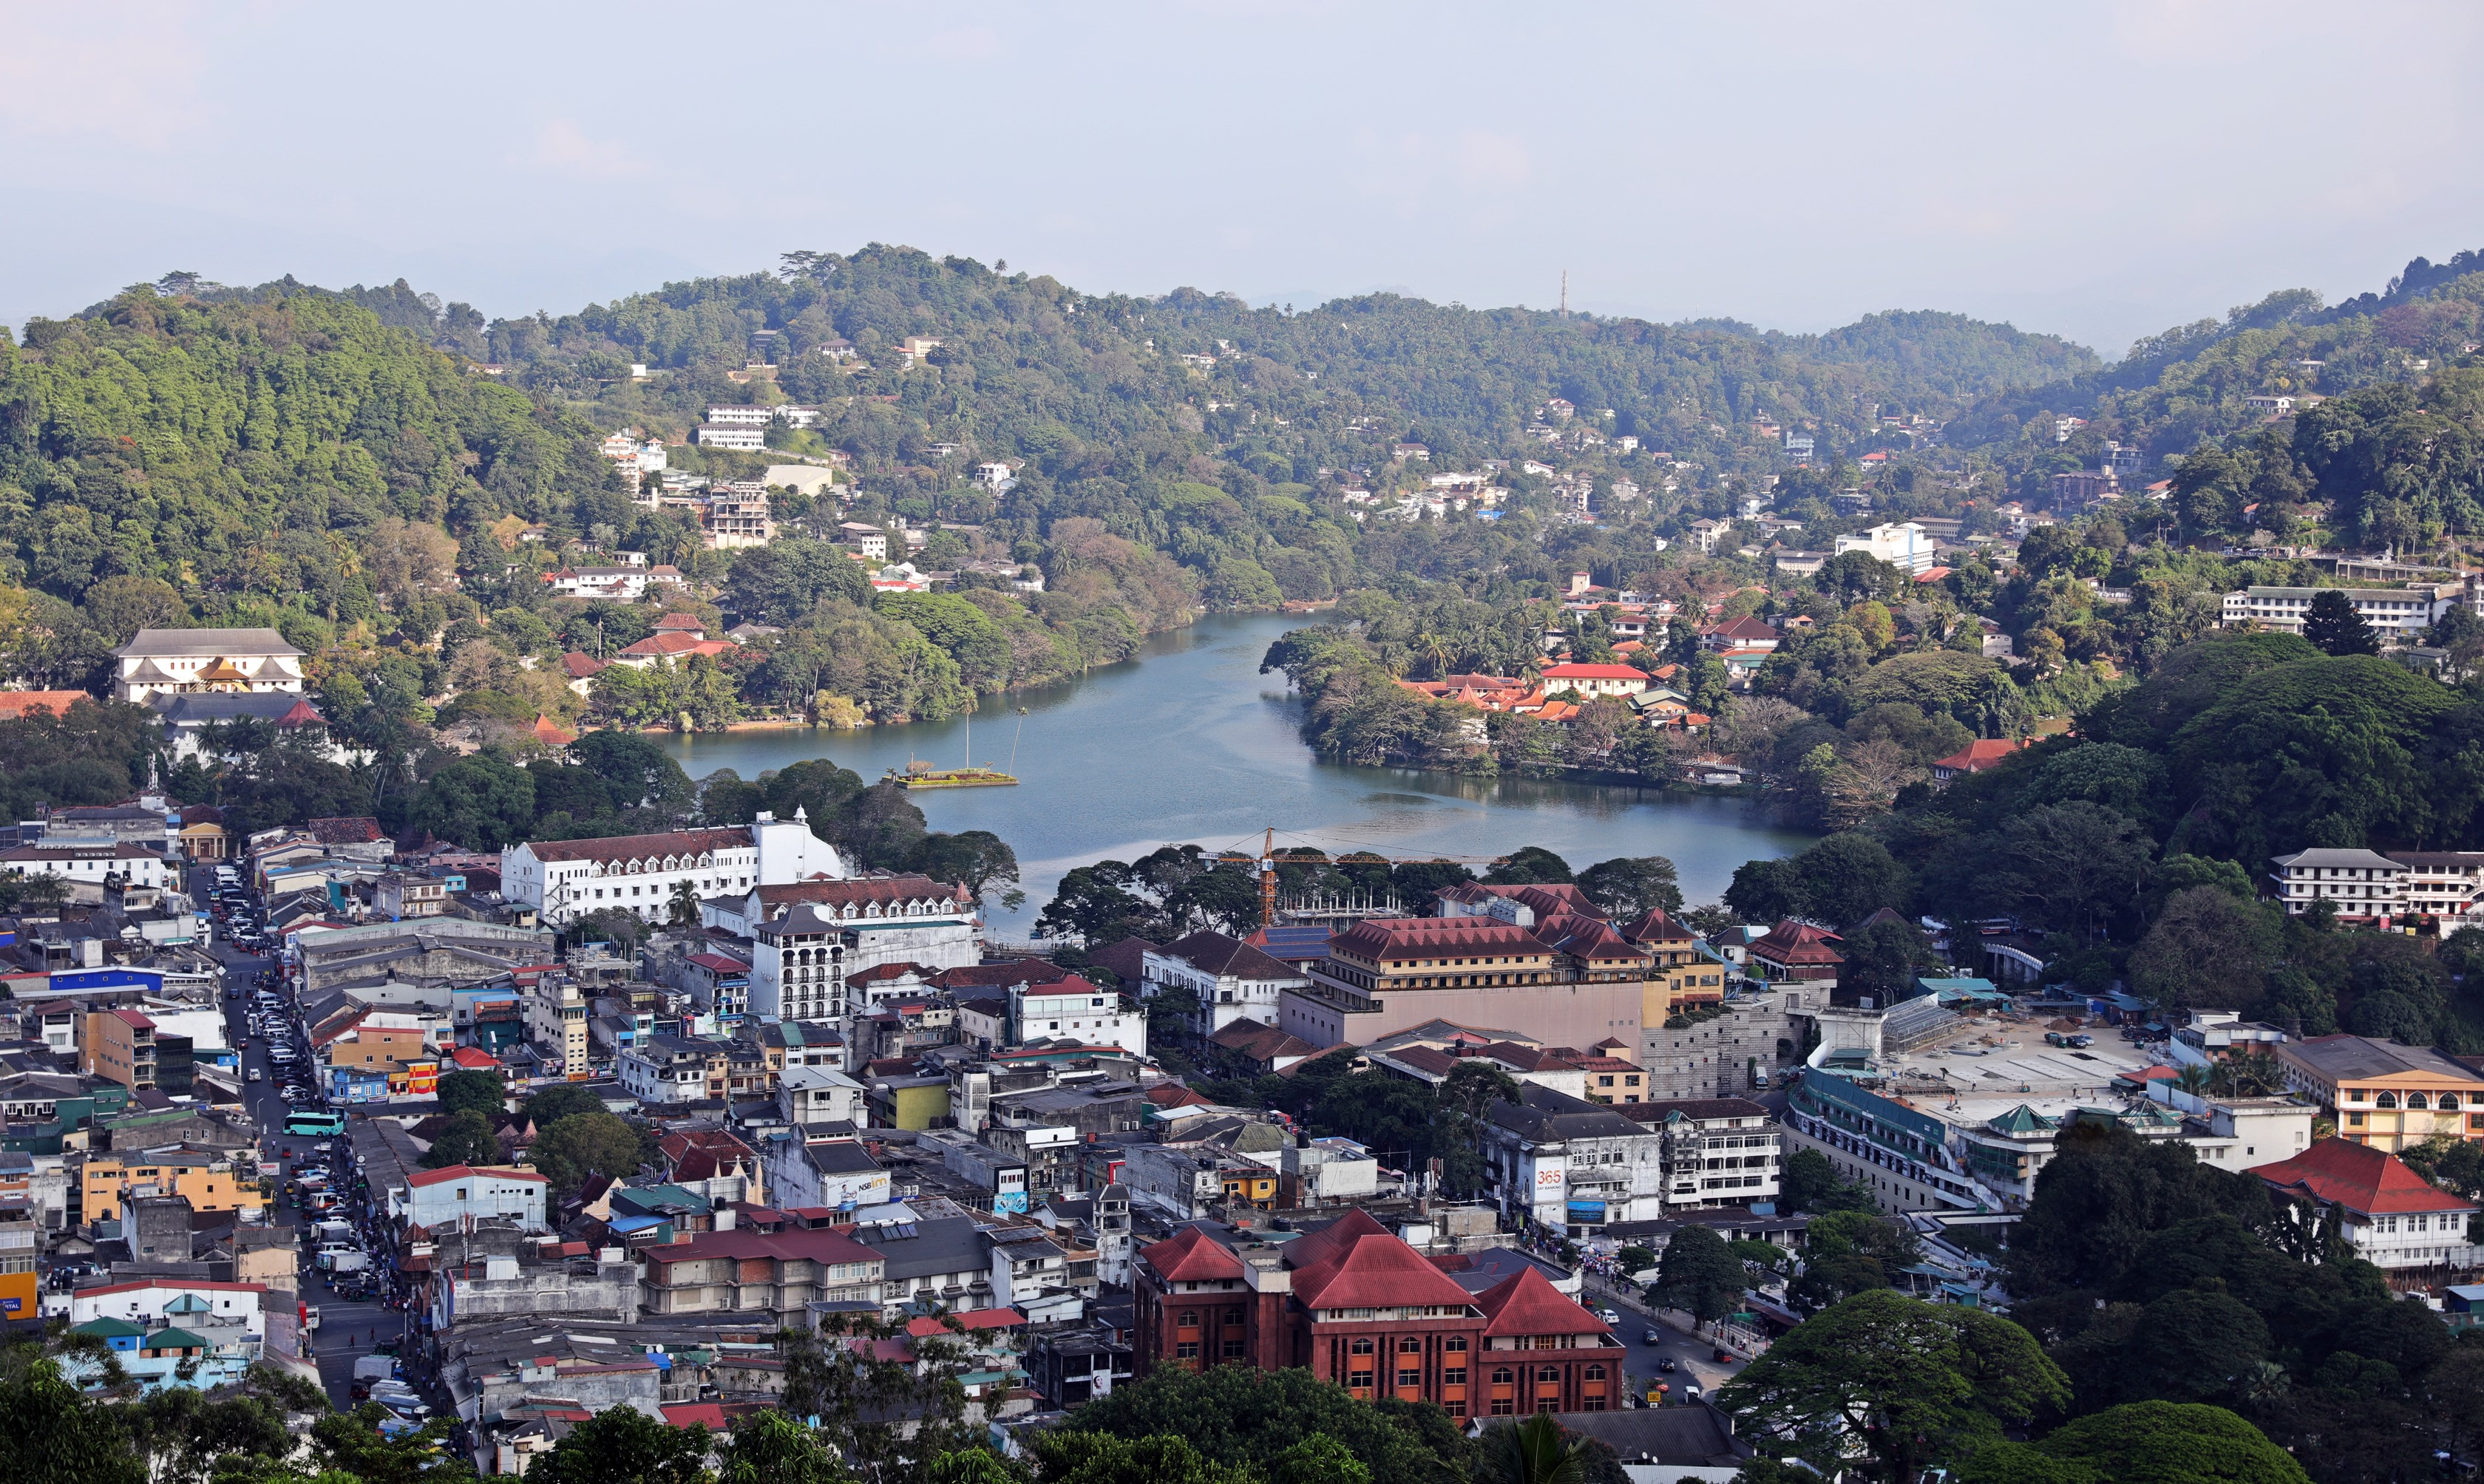 View of Kandy from Buddha statue